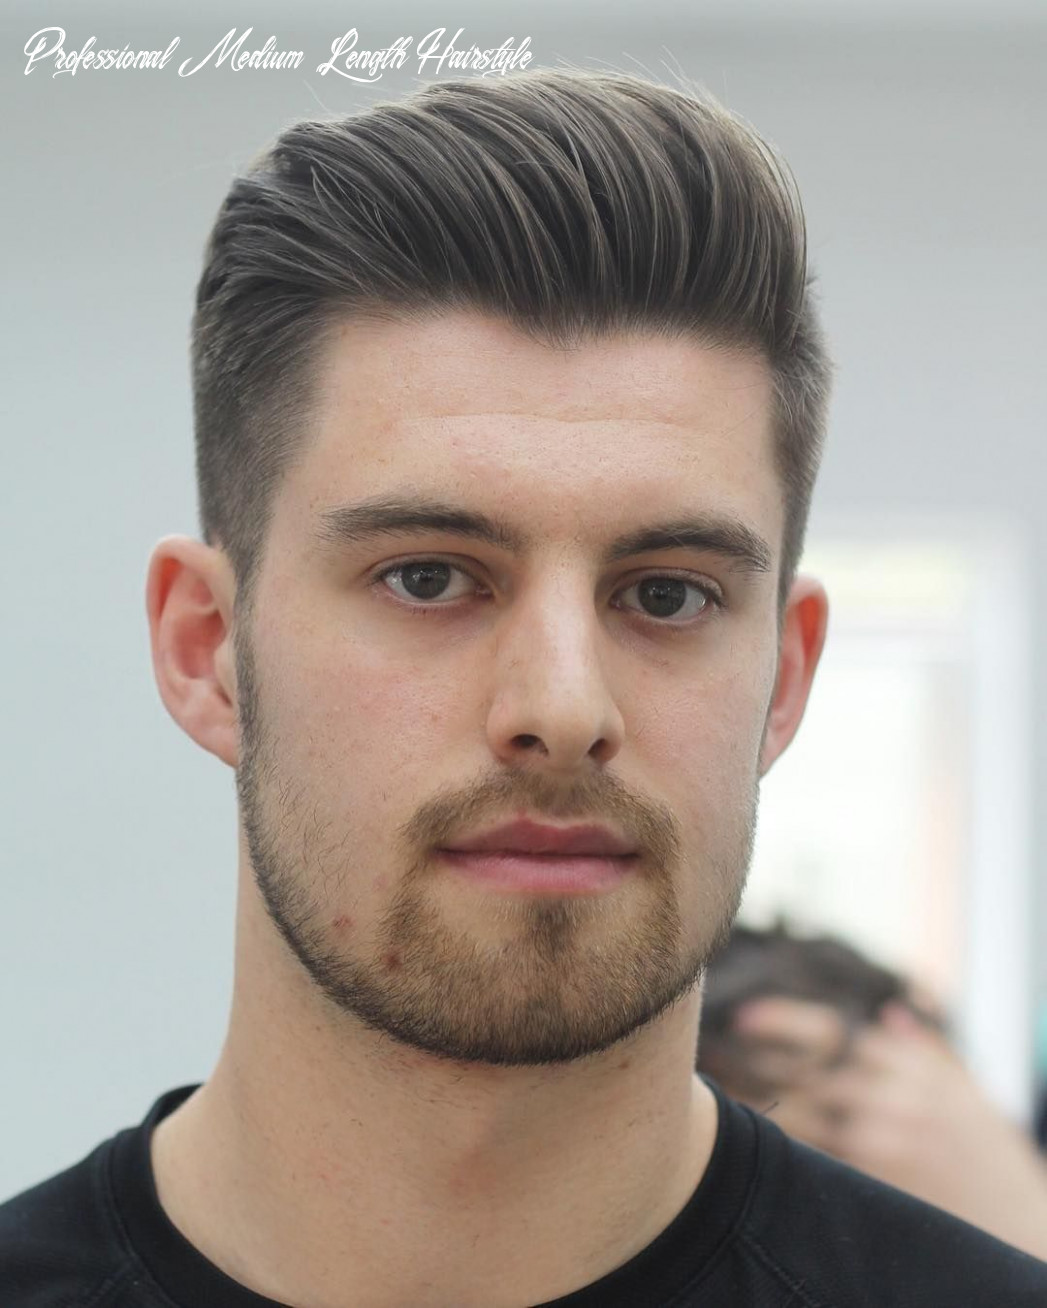 Cool 11 classic professional hairstyles for men do your best